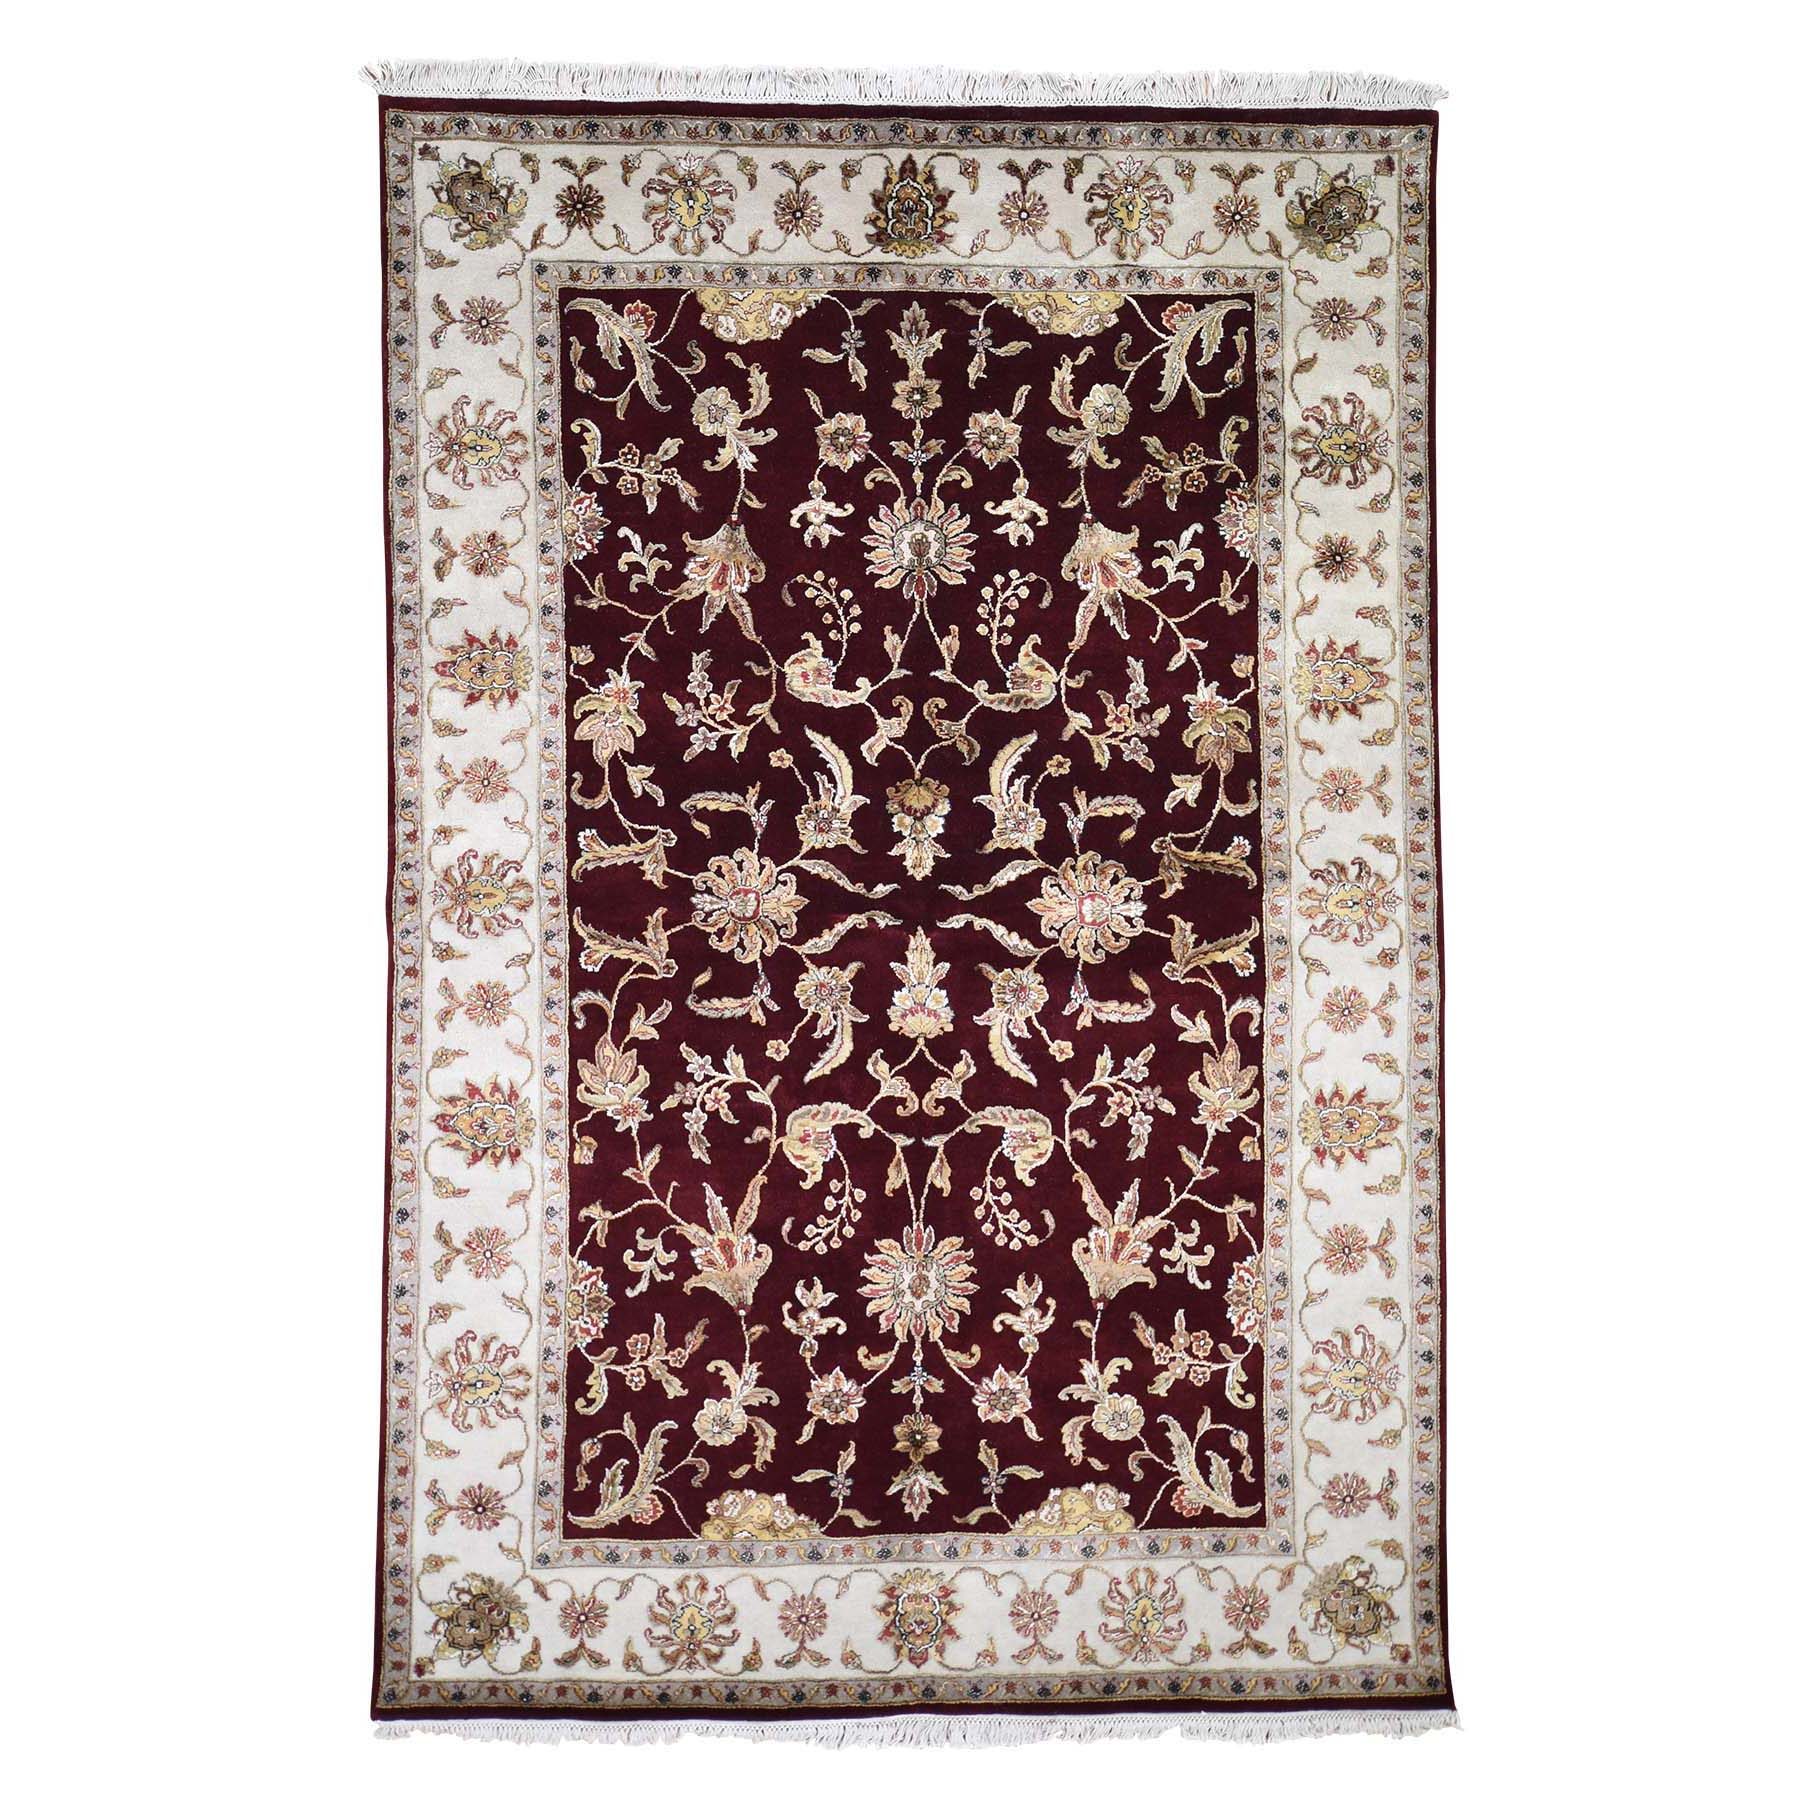 "6'X9'1""Rajasthan Half Wool And Half Silk Hand-Knotted Oriental Rug moadd98c"